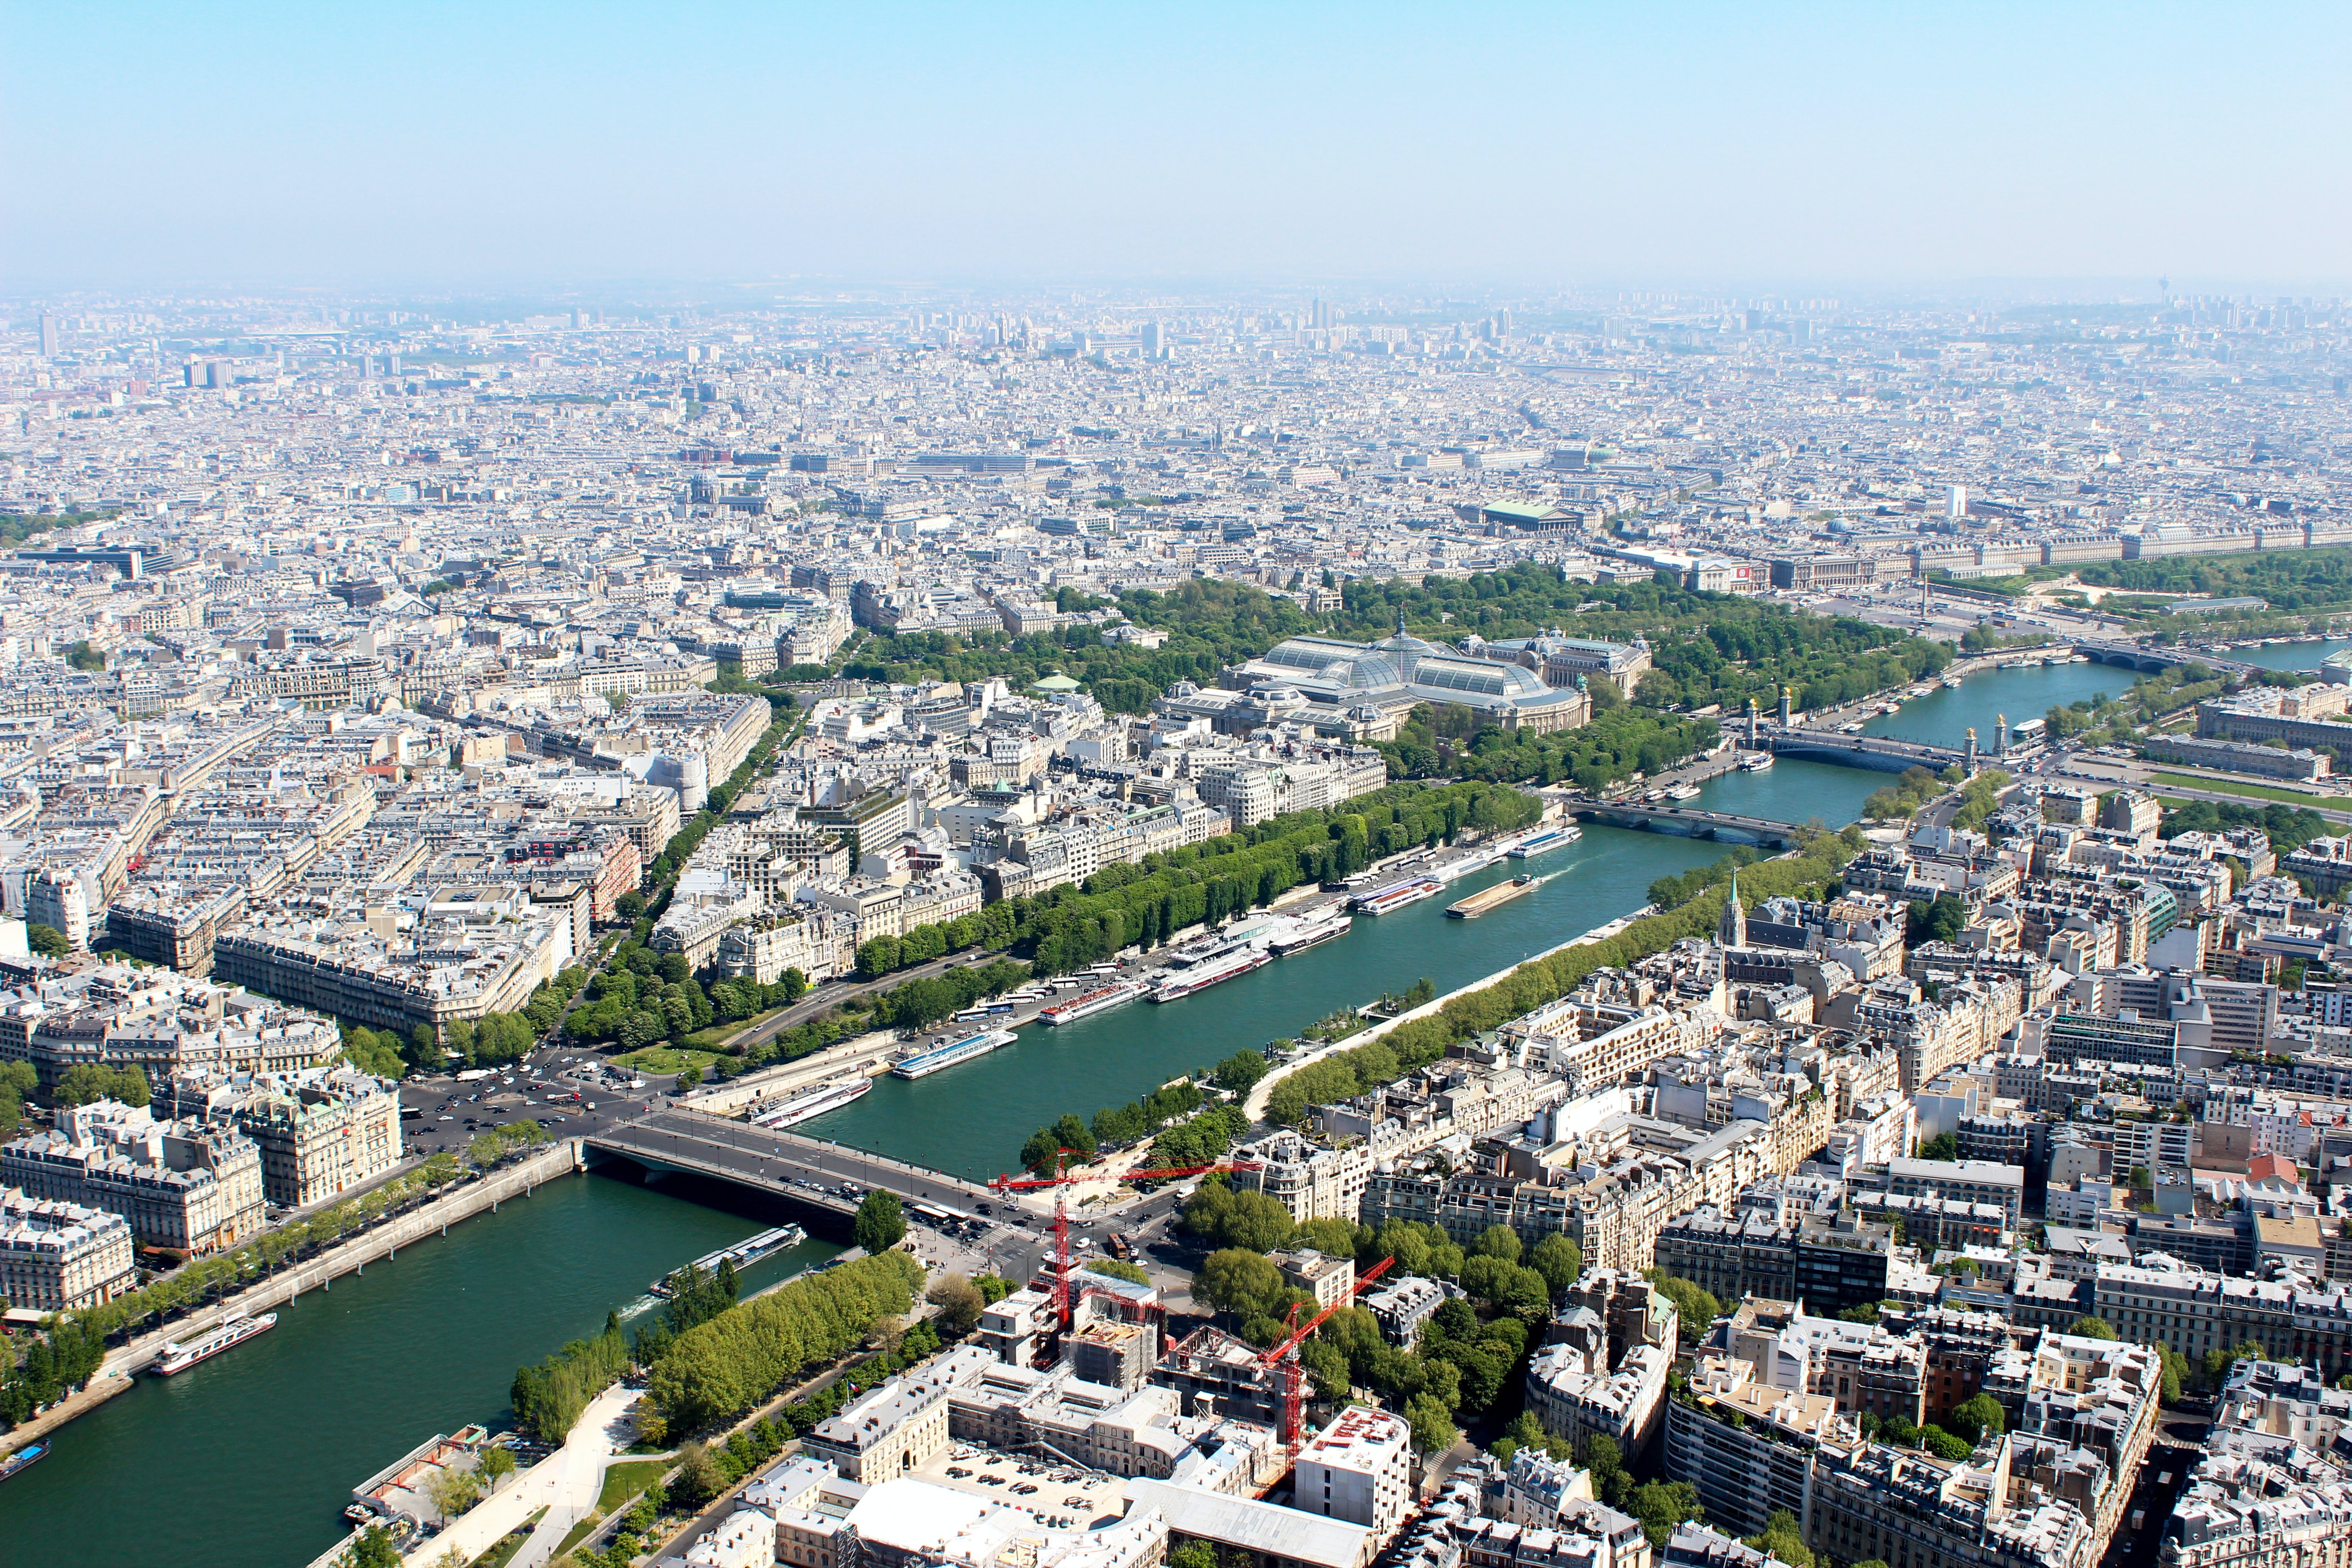 A drone shot of Paris and the Seine River on a sunny day